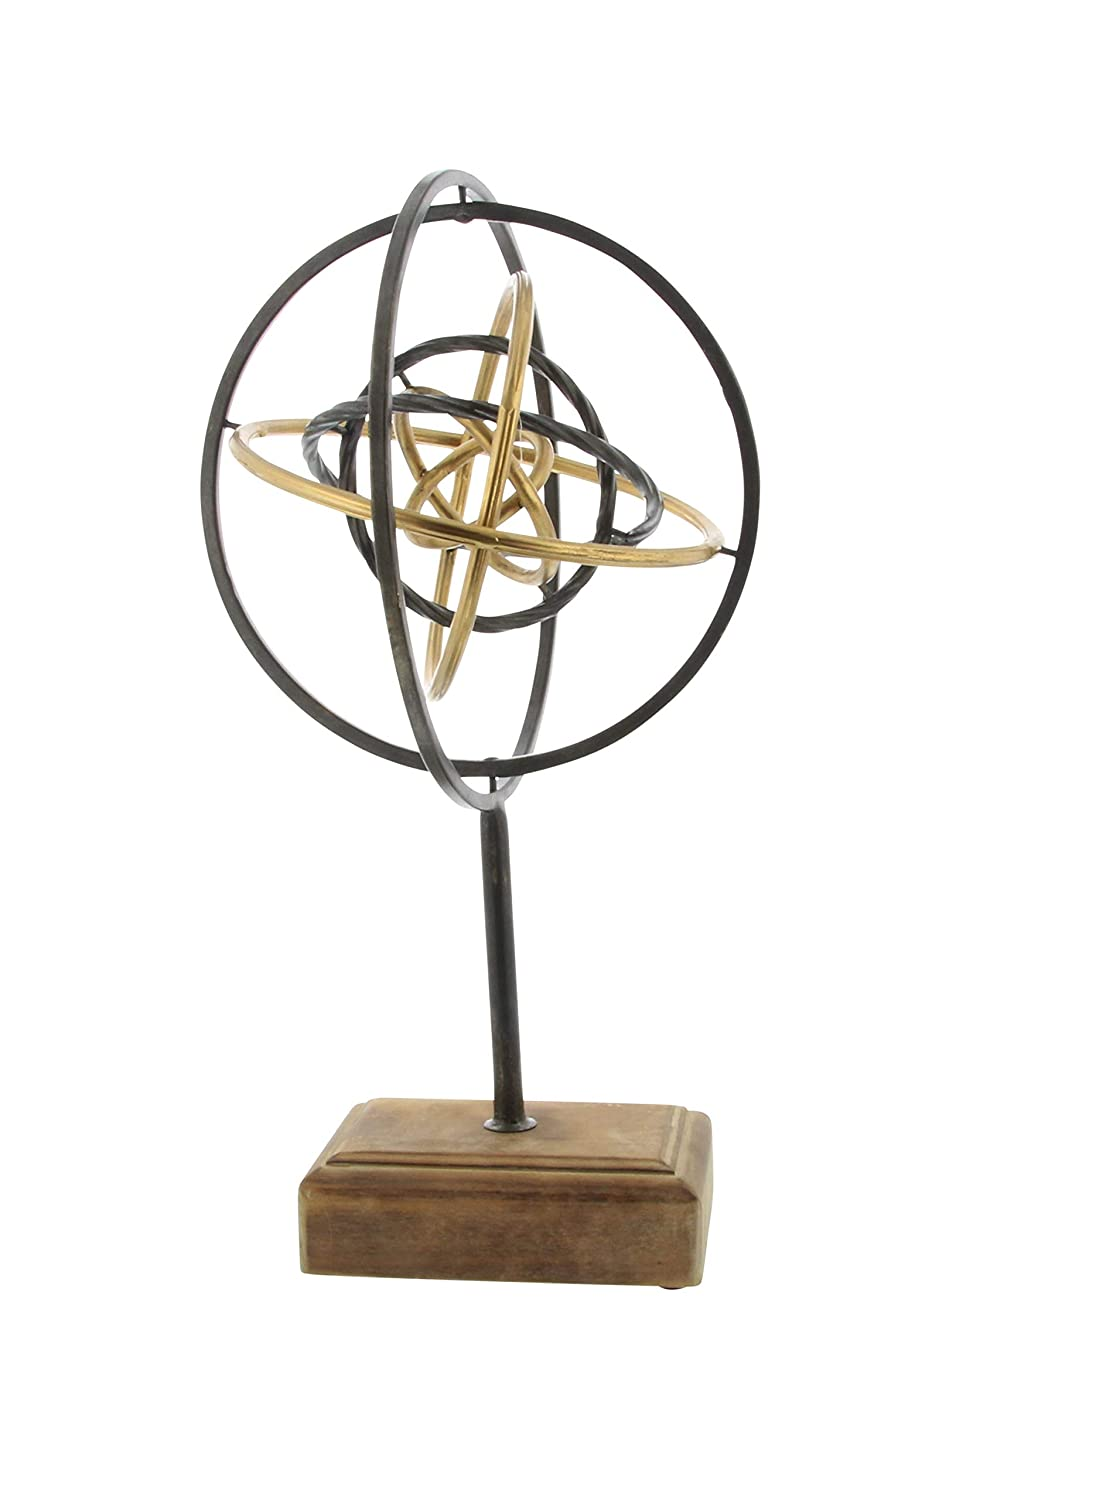 19 x 10 Deco 79 84241 Iron and Wood Atom Sculpture Black//Brown//Gold